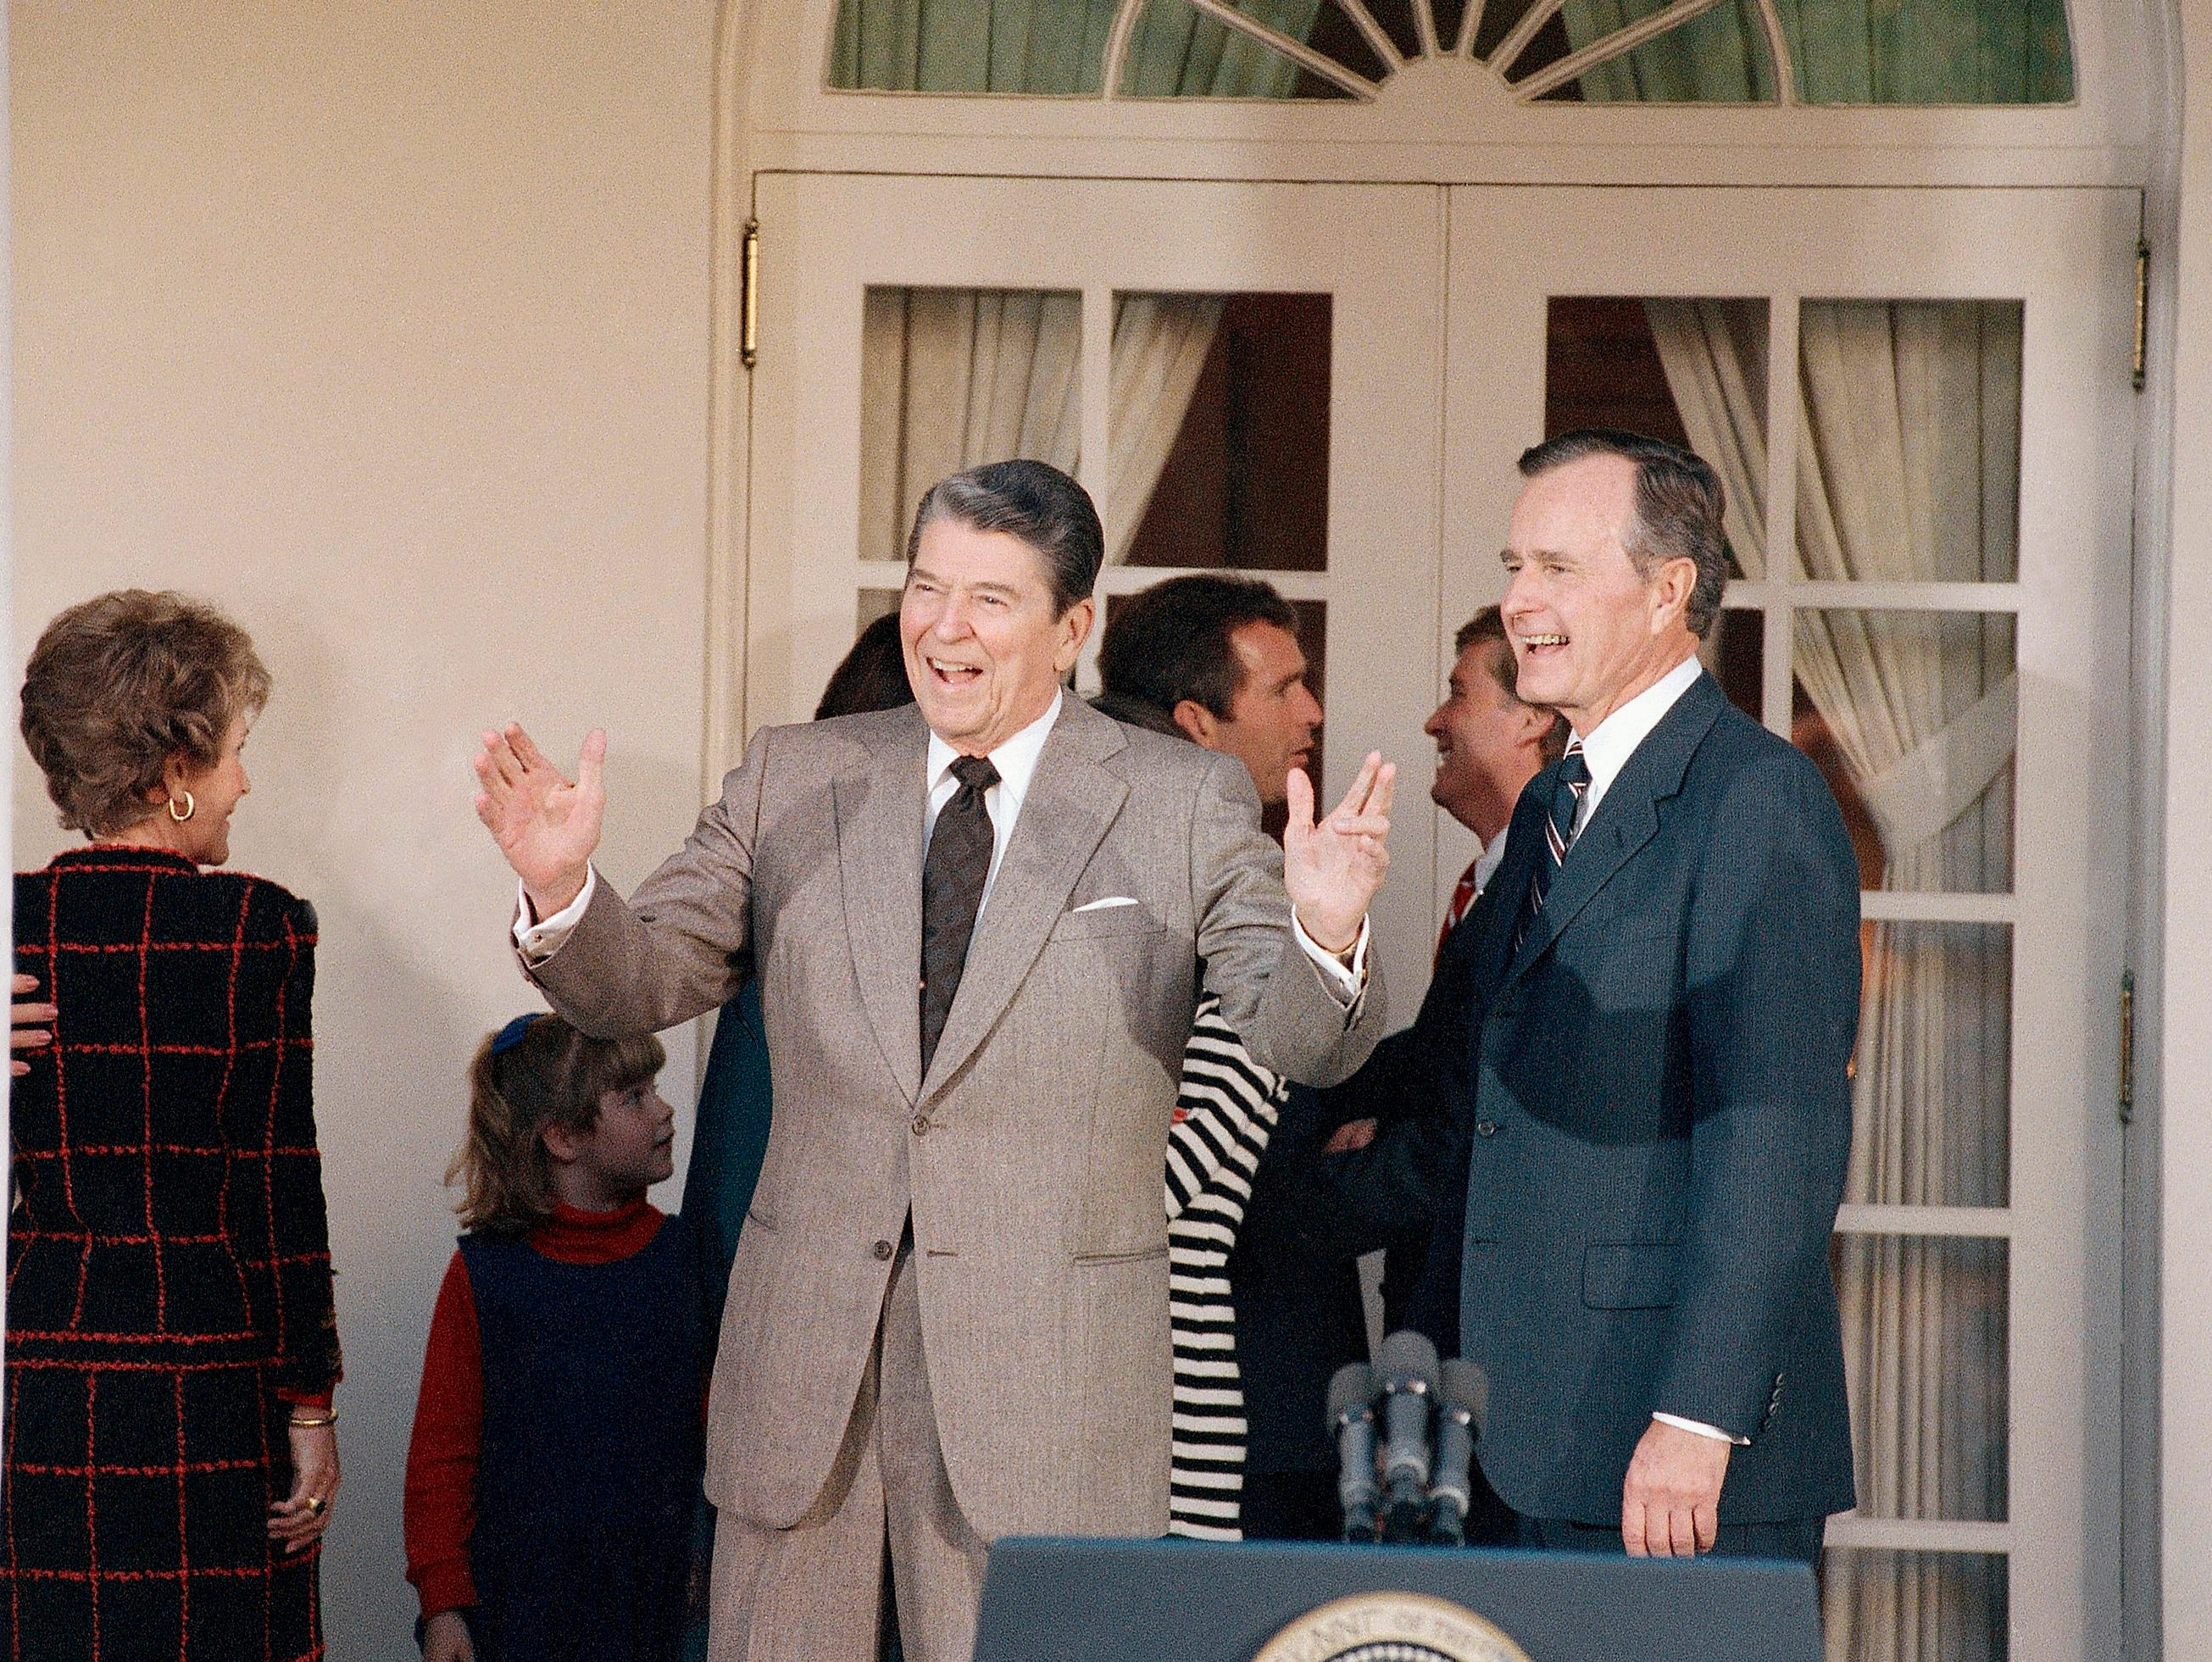 Pres. Ronald Reagan, left, responds to a reporter as President-elect George H. W. Bush, right, looks on following a Rose Garden ceremony at the White House, Wednesday, Nov. 9, 1988, Washington, D.C. (AP Photo/Charles Tasnadi)